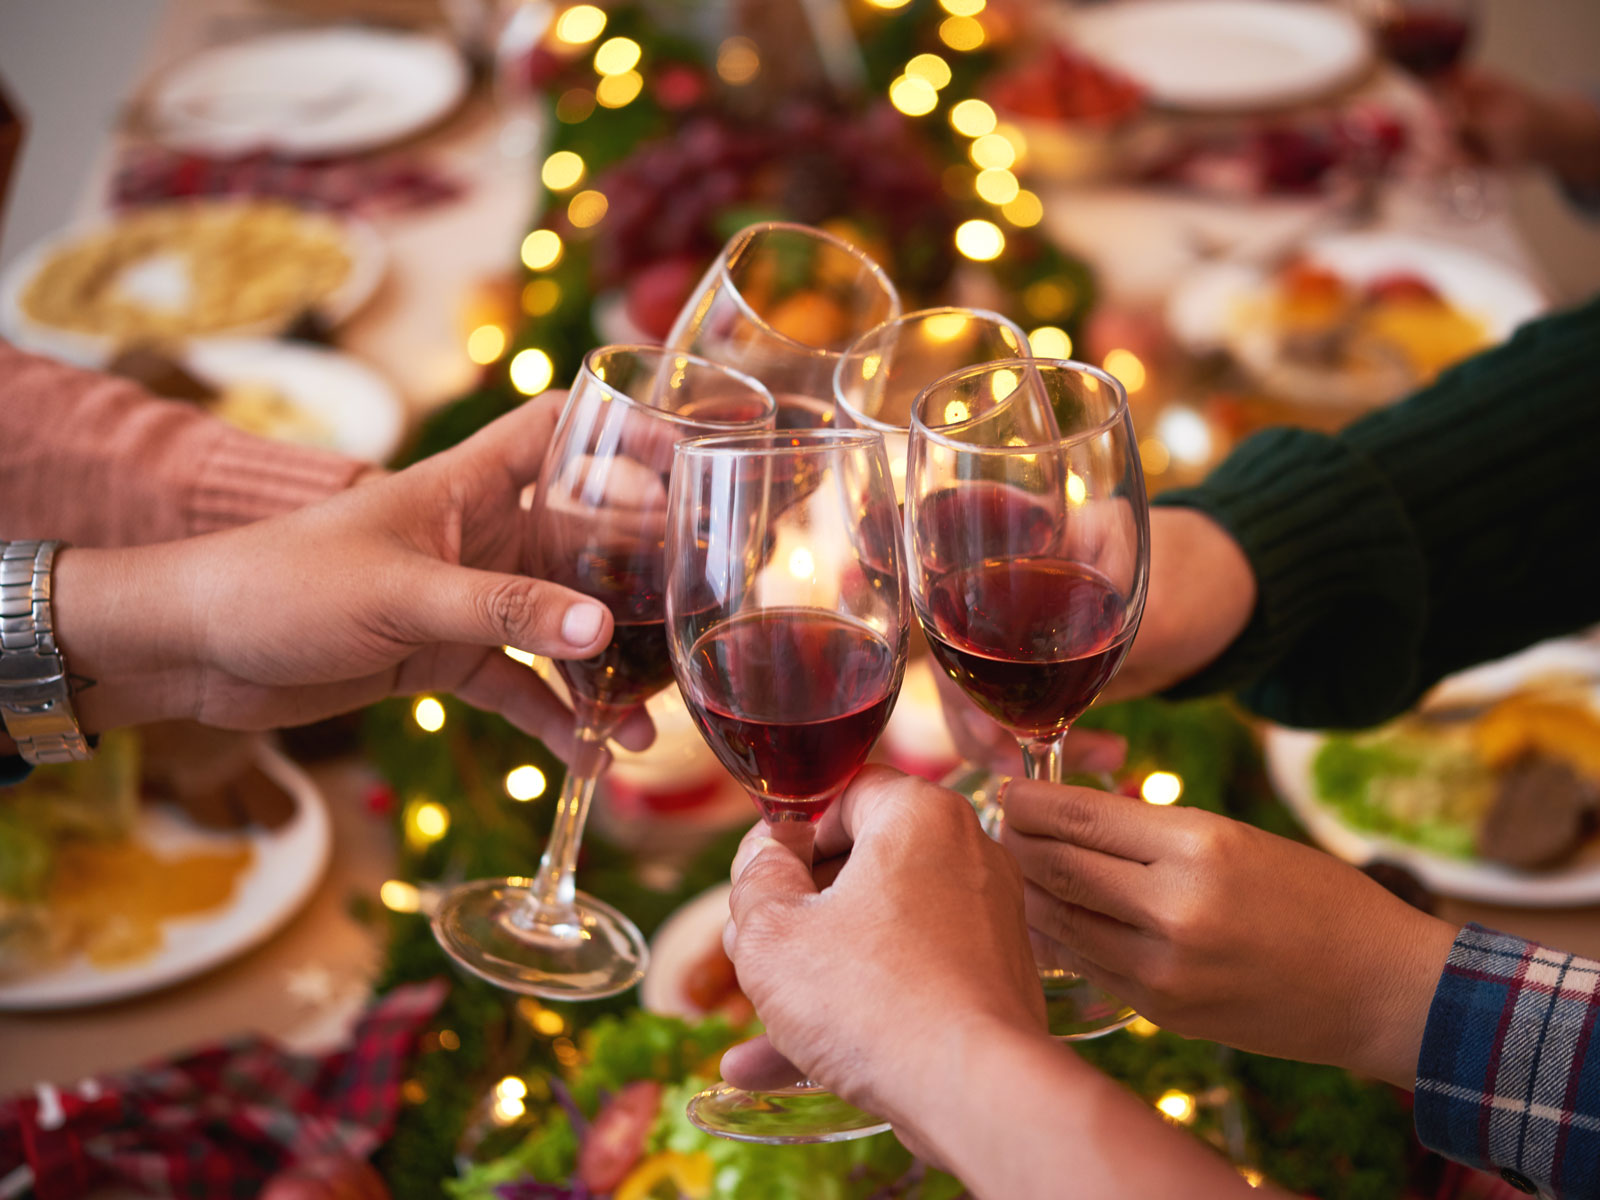 Here's How Much (More) We Drink During the Holidays